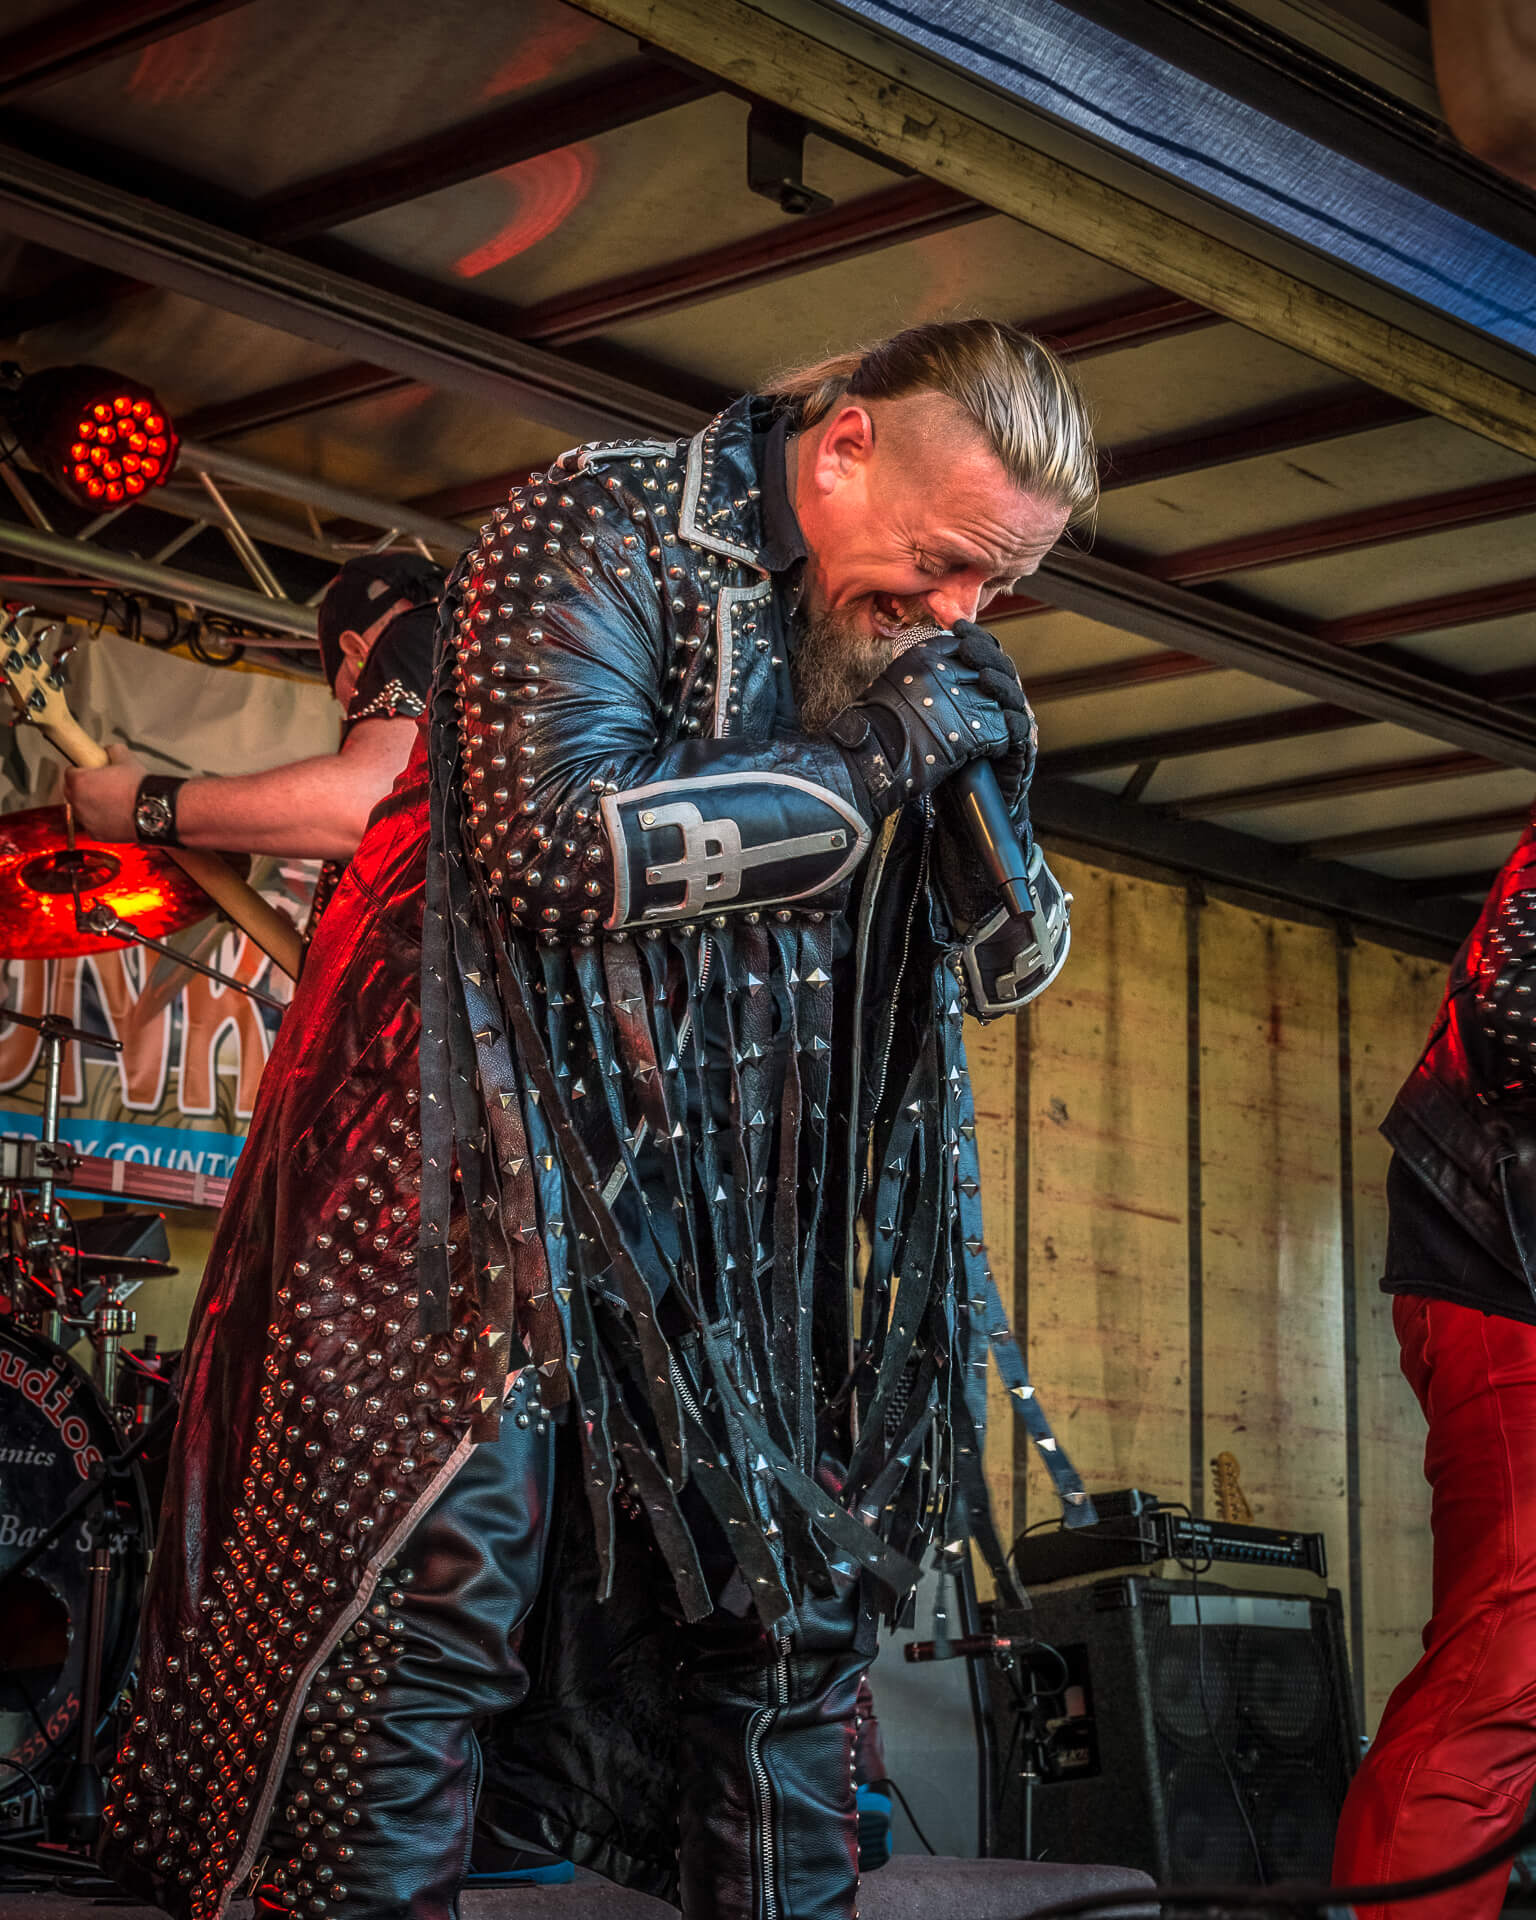 An image of Wilf, frontman of Hellbent Forever, a Judas Priest tribute band seen here on stage at The Drunken Monkey Rock Festival. This colour image shows Wilf, crouched over, as he holds the mic close to his mouth during the final part of the song. He wears his full length studded and tasseled leather coat.